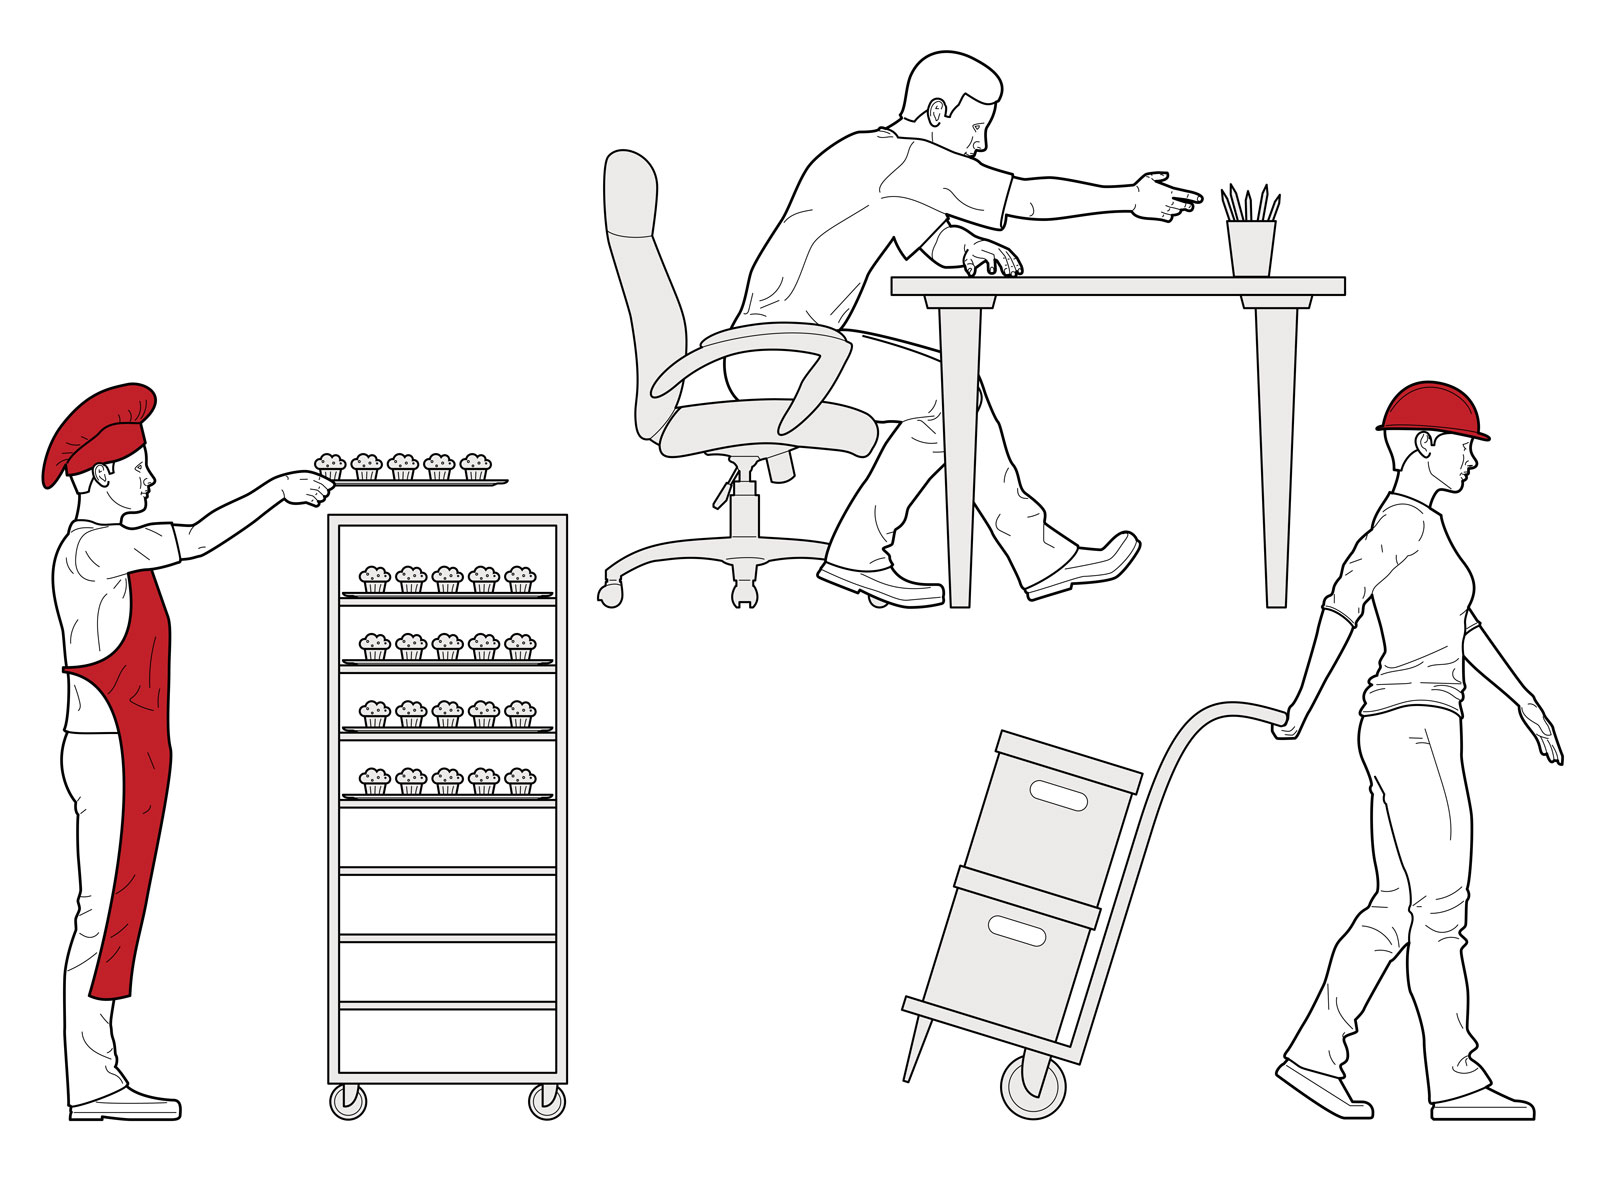 Occupational Health and Safety repetitive movements